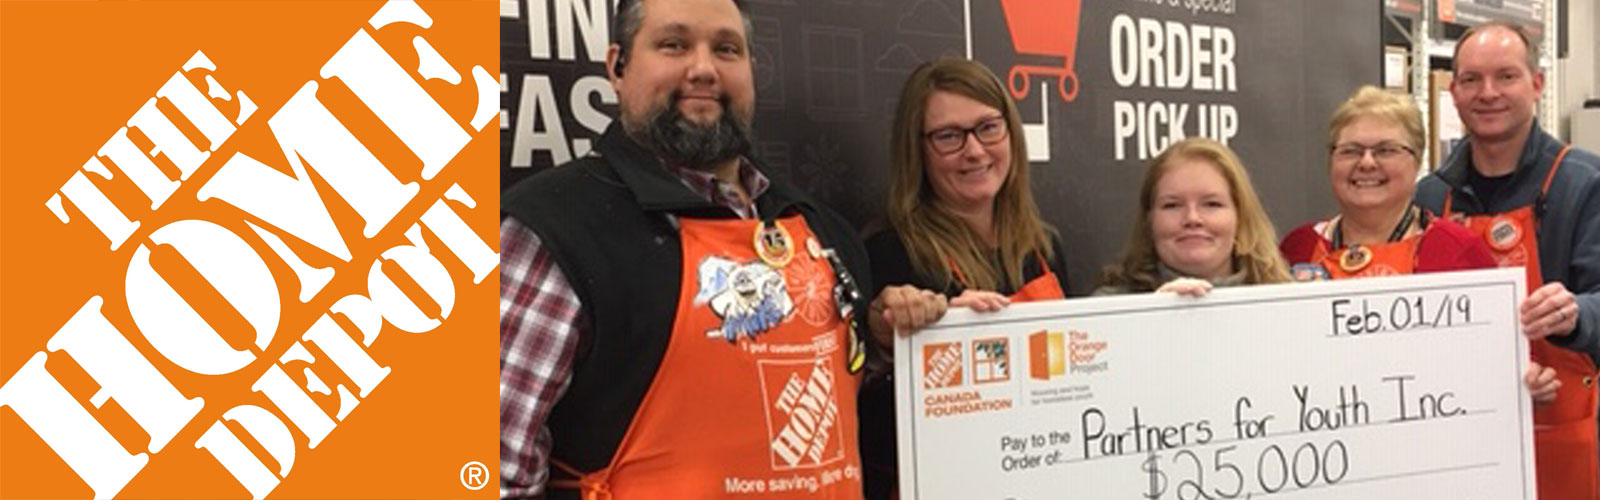 Home Depot helps support youth development programming